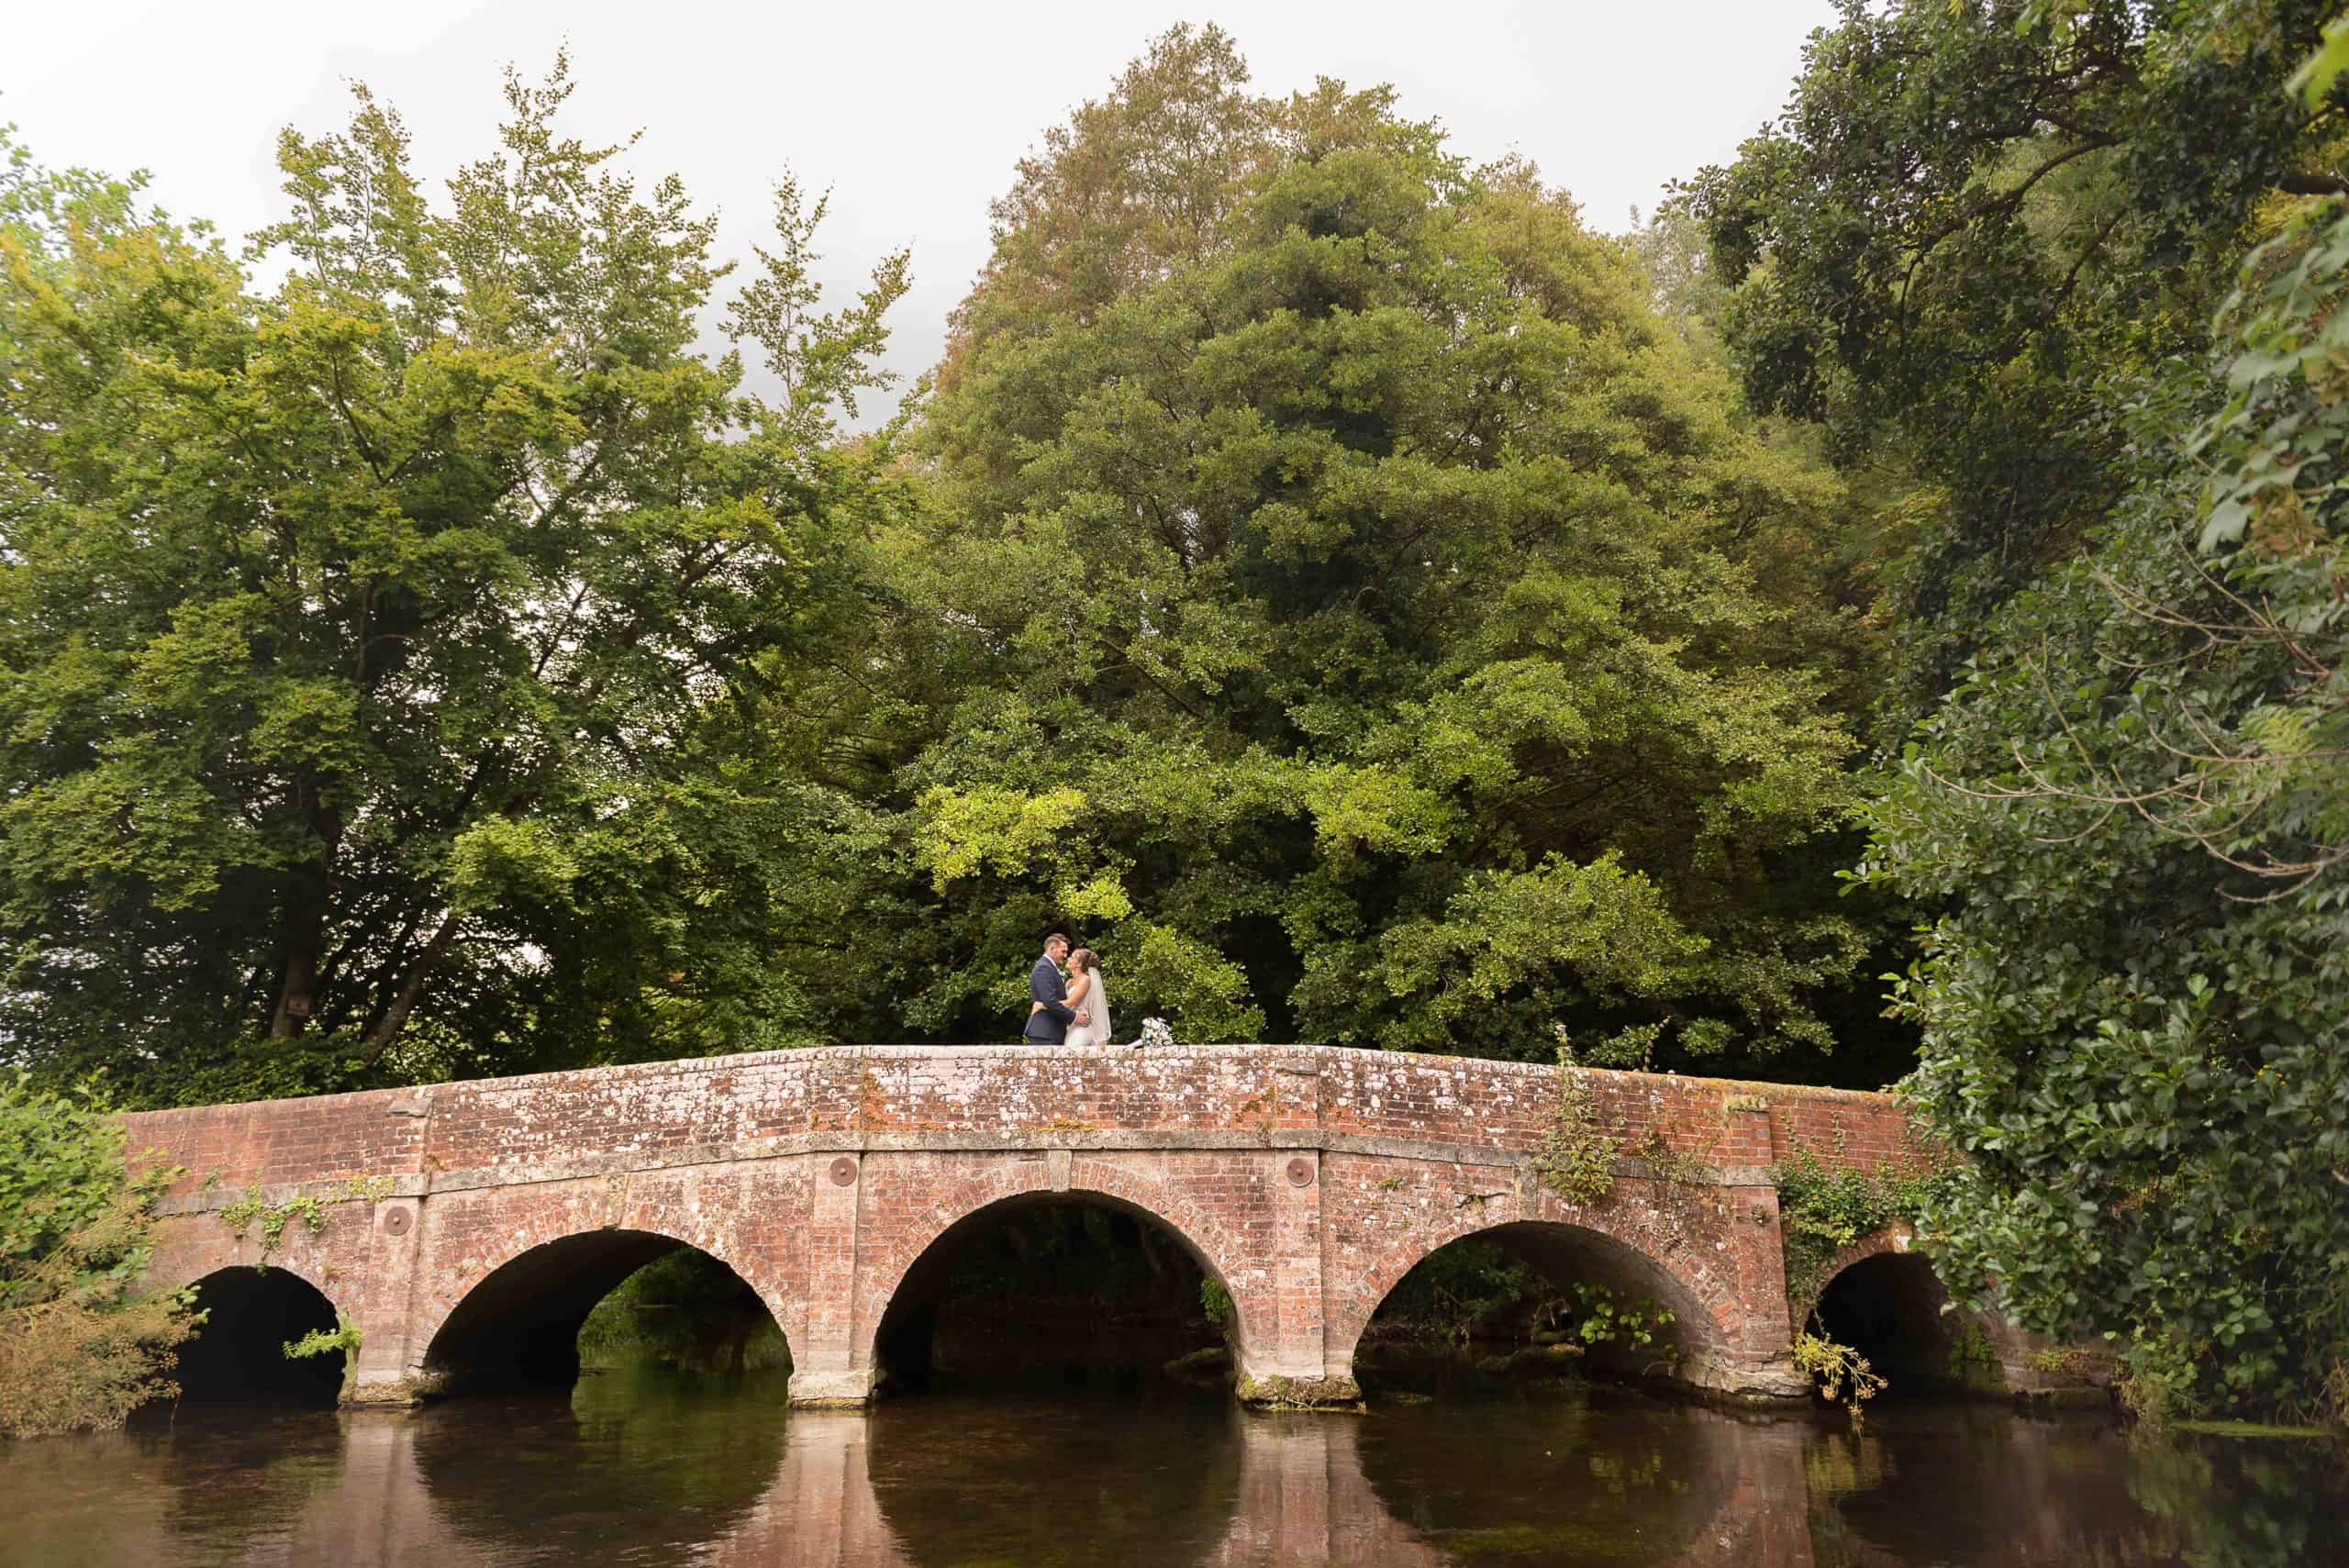 Beautiful Landscape photo of a bride and groom stood on a bride looking lovingly at each other, beautiful trees in the background and river in the foreground, in Salisbury, Wiltshire